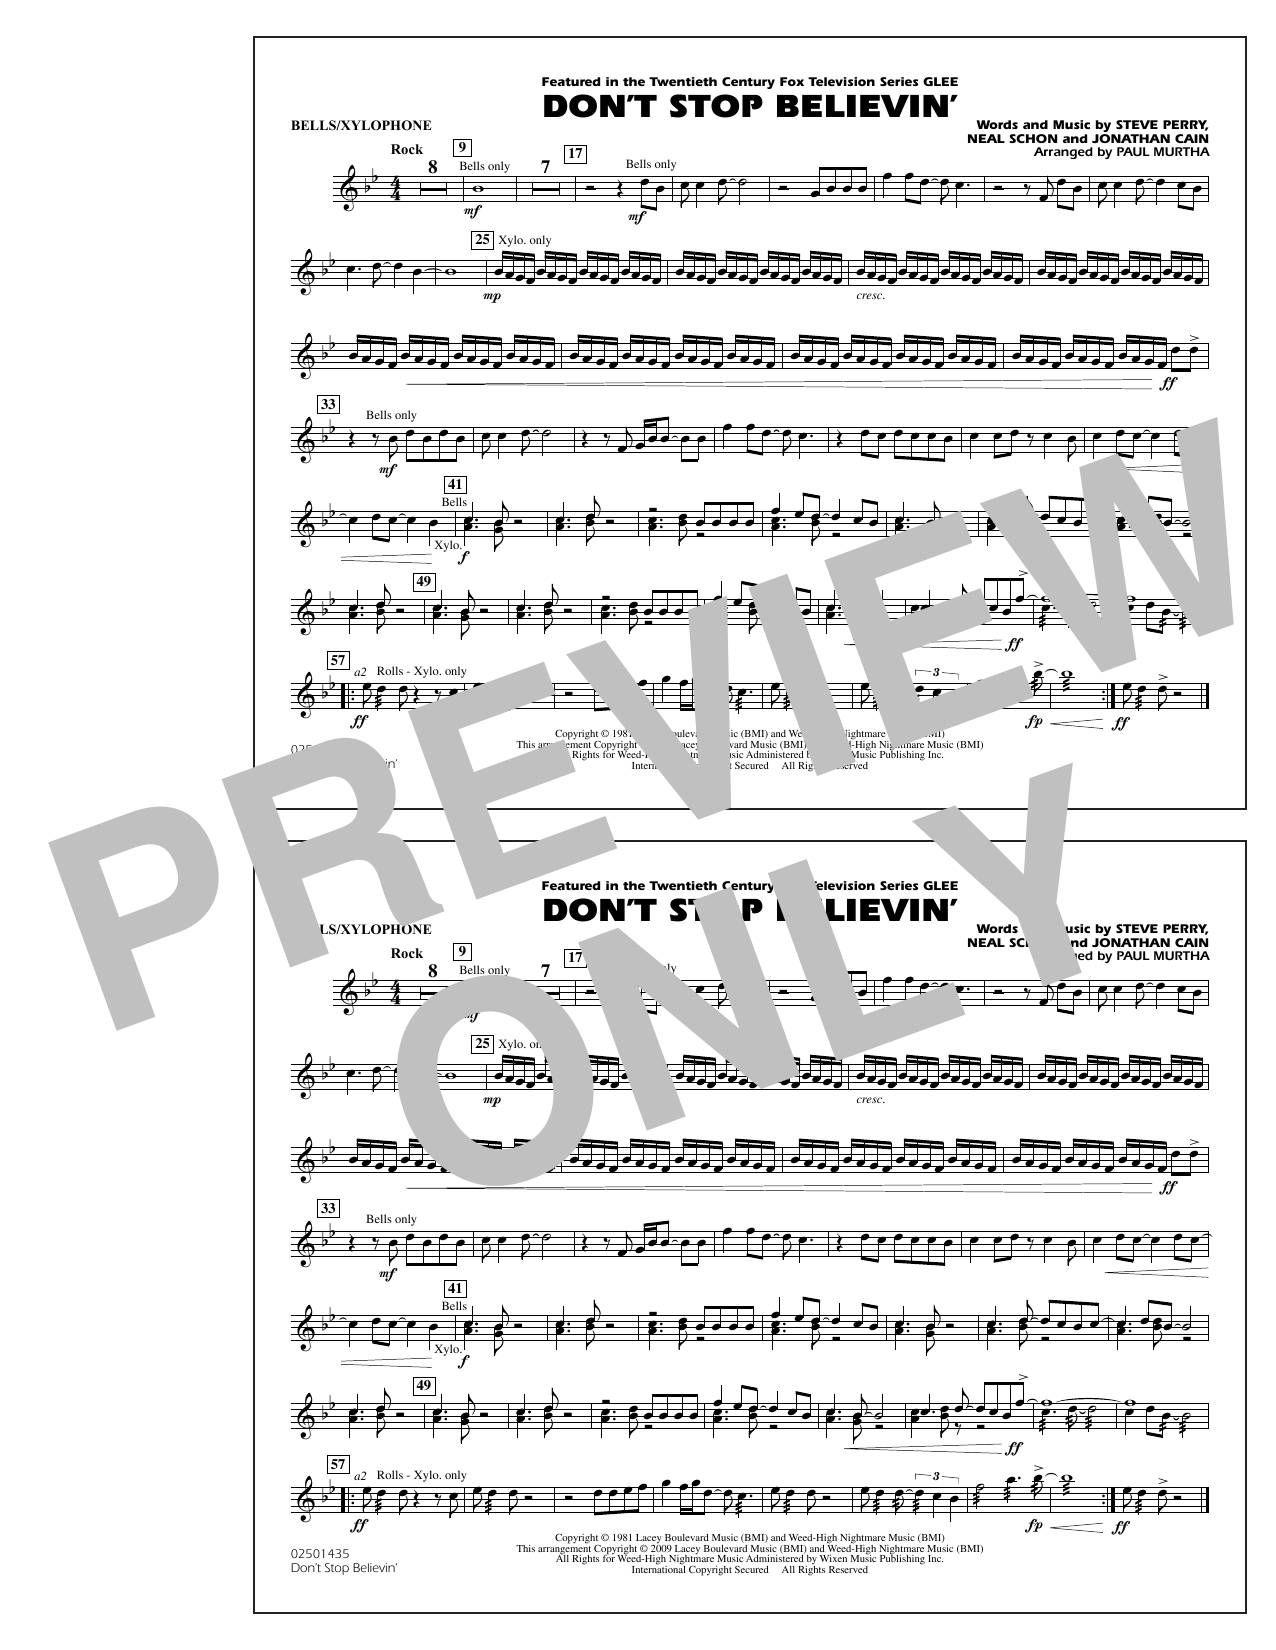 Paul Murtha Don't Stop Believin' - Bells/Xylophone sheet music notes and chords. Download Printable PDF.